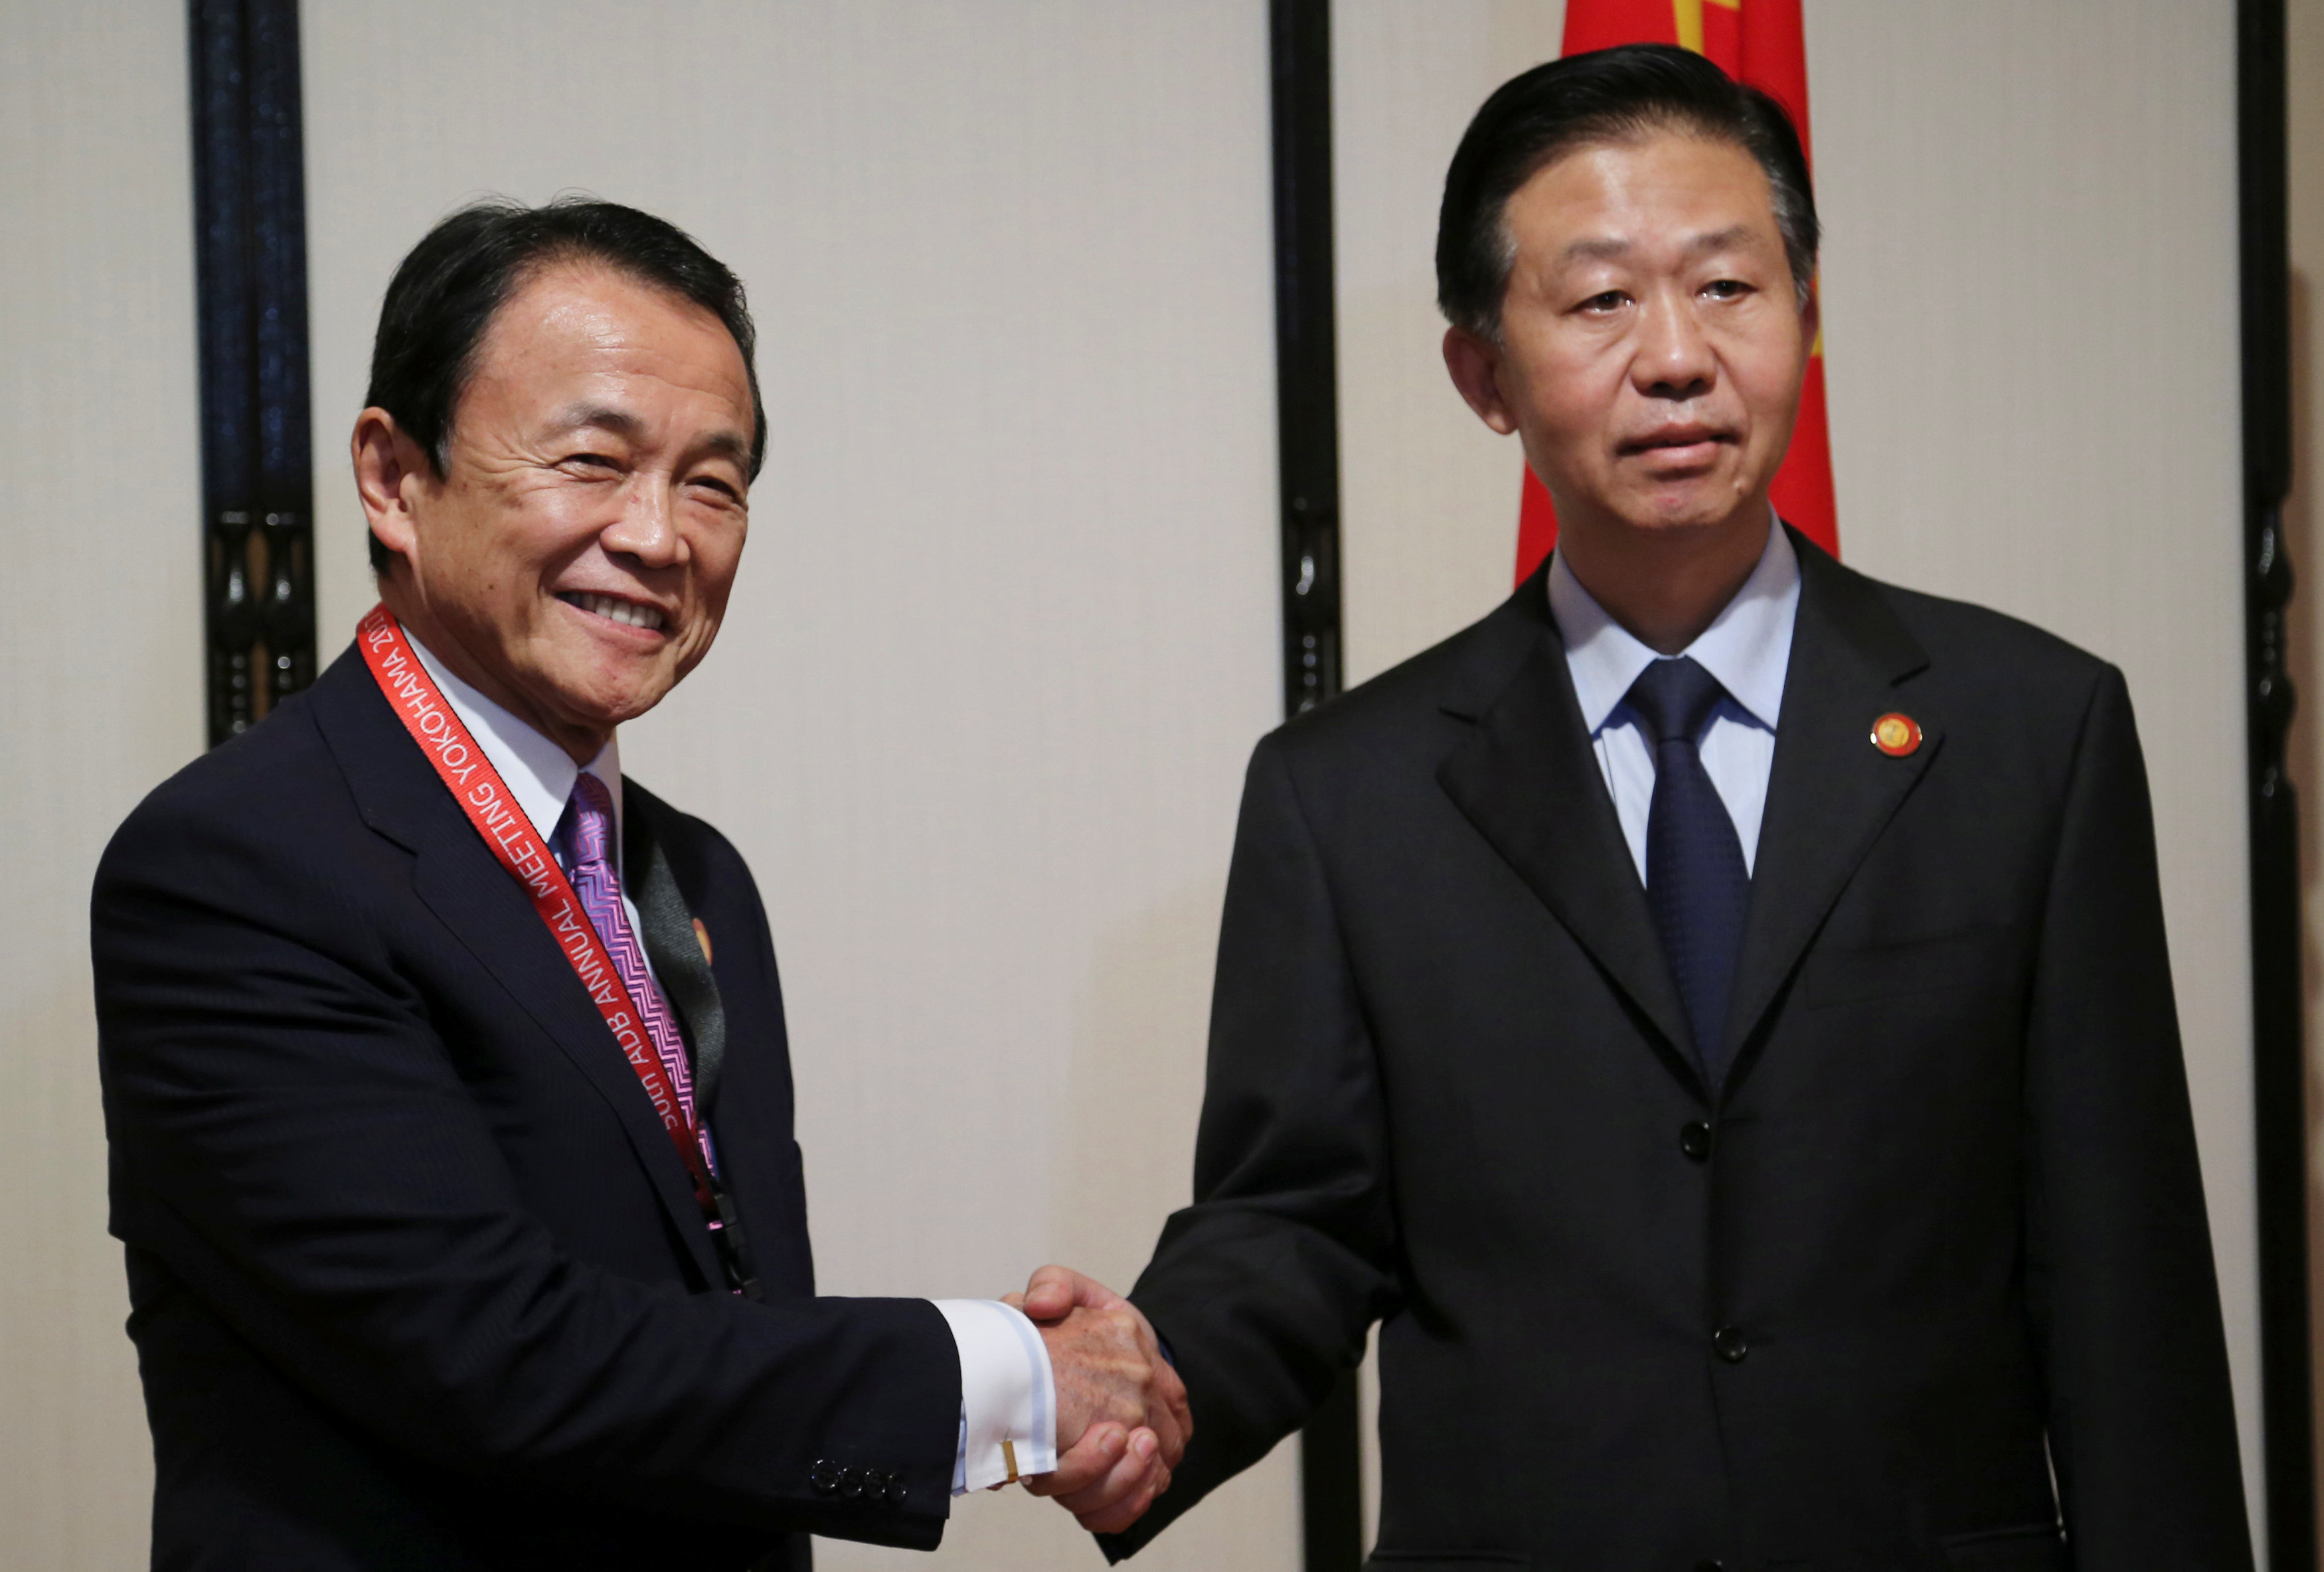 Chinese Finance Minister Xiao Jie (R) and Japanese Finance Minister Taro Aso shake hands during their bilateral meeting, on the sidelines of Asian Development Bank (ADB) annual meeting, in Yokohama, Japan, Saturday, May 6, 2017. REUTERS/Koji Sasahara/Pool